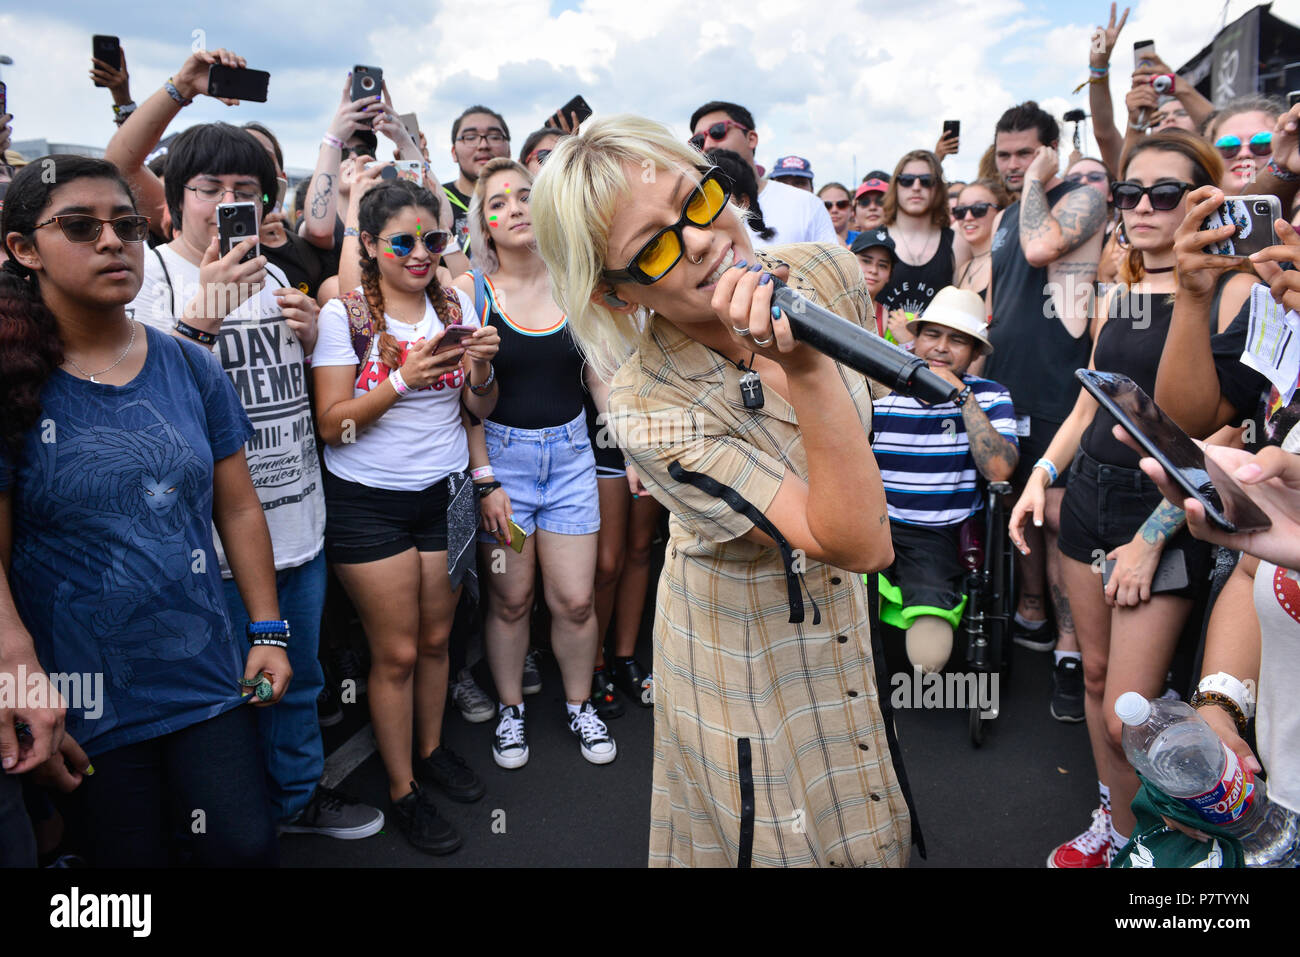 San Antonio, USA. 7th July 2018. JENNA MCDOUGALL of Tonight Alive sings while walking through the crowd during the Vans Warped Tour June 7, 2018 in San Antonio, Texas. Credit: Robin Jerstad/Alamy Live News - Stock Image